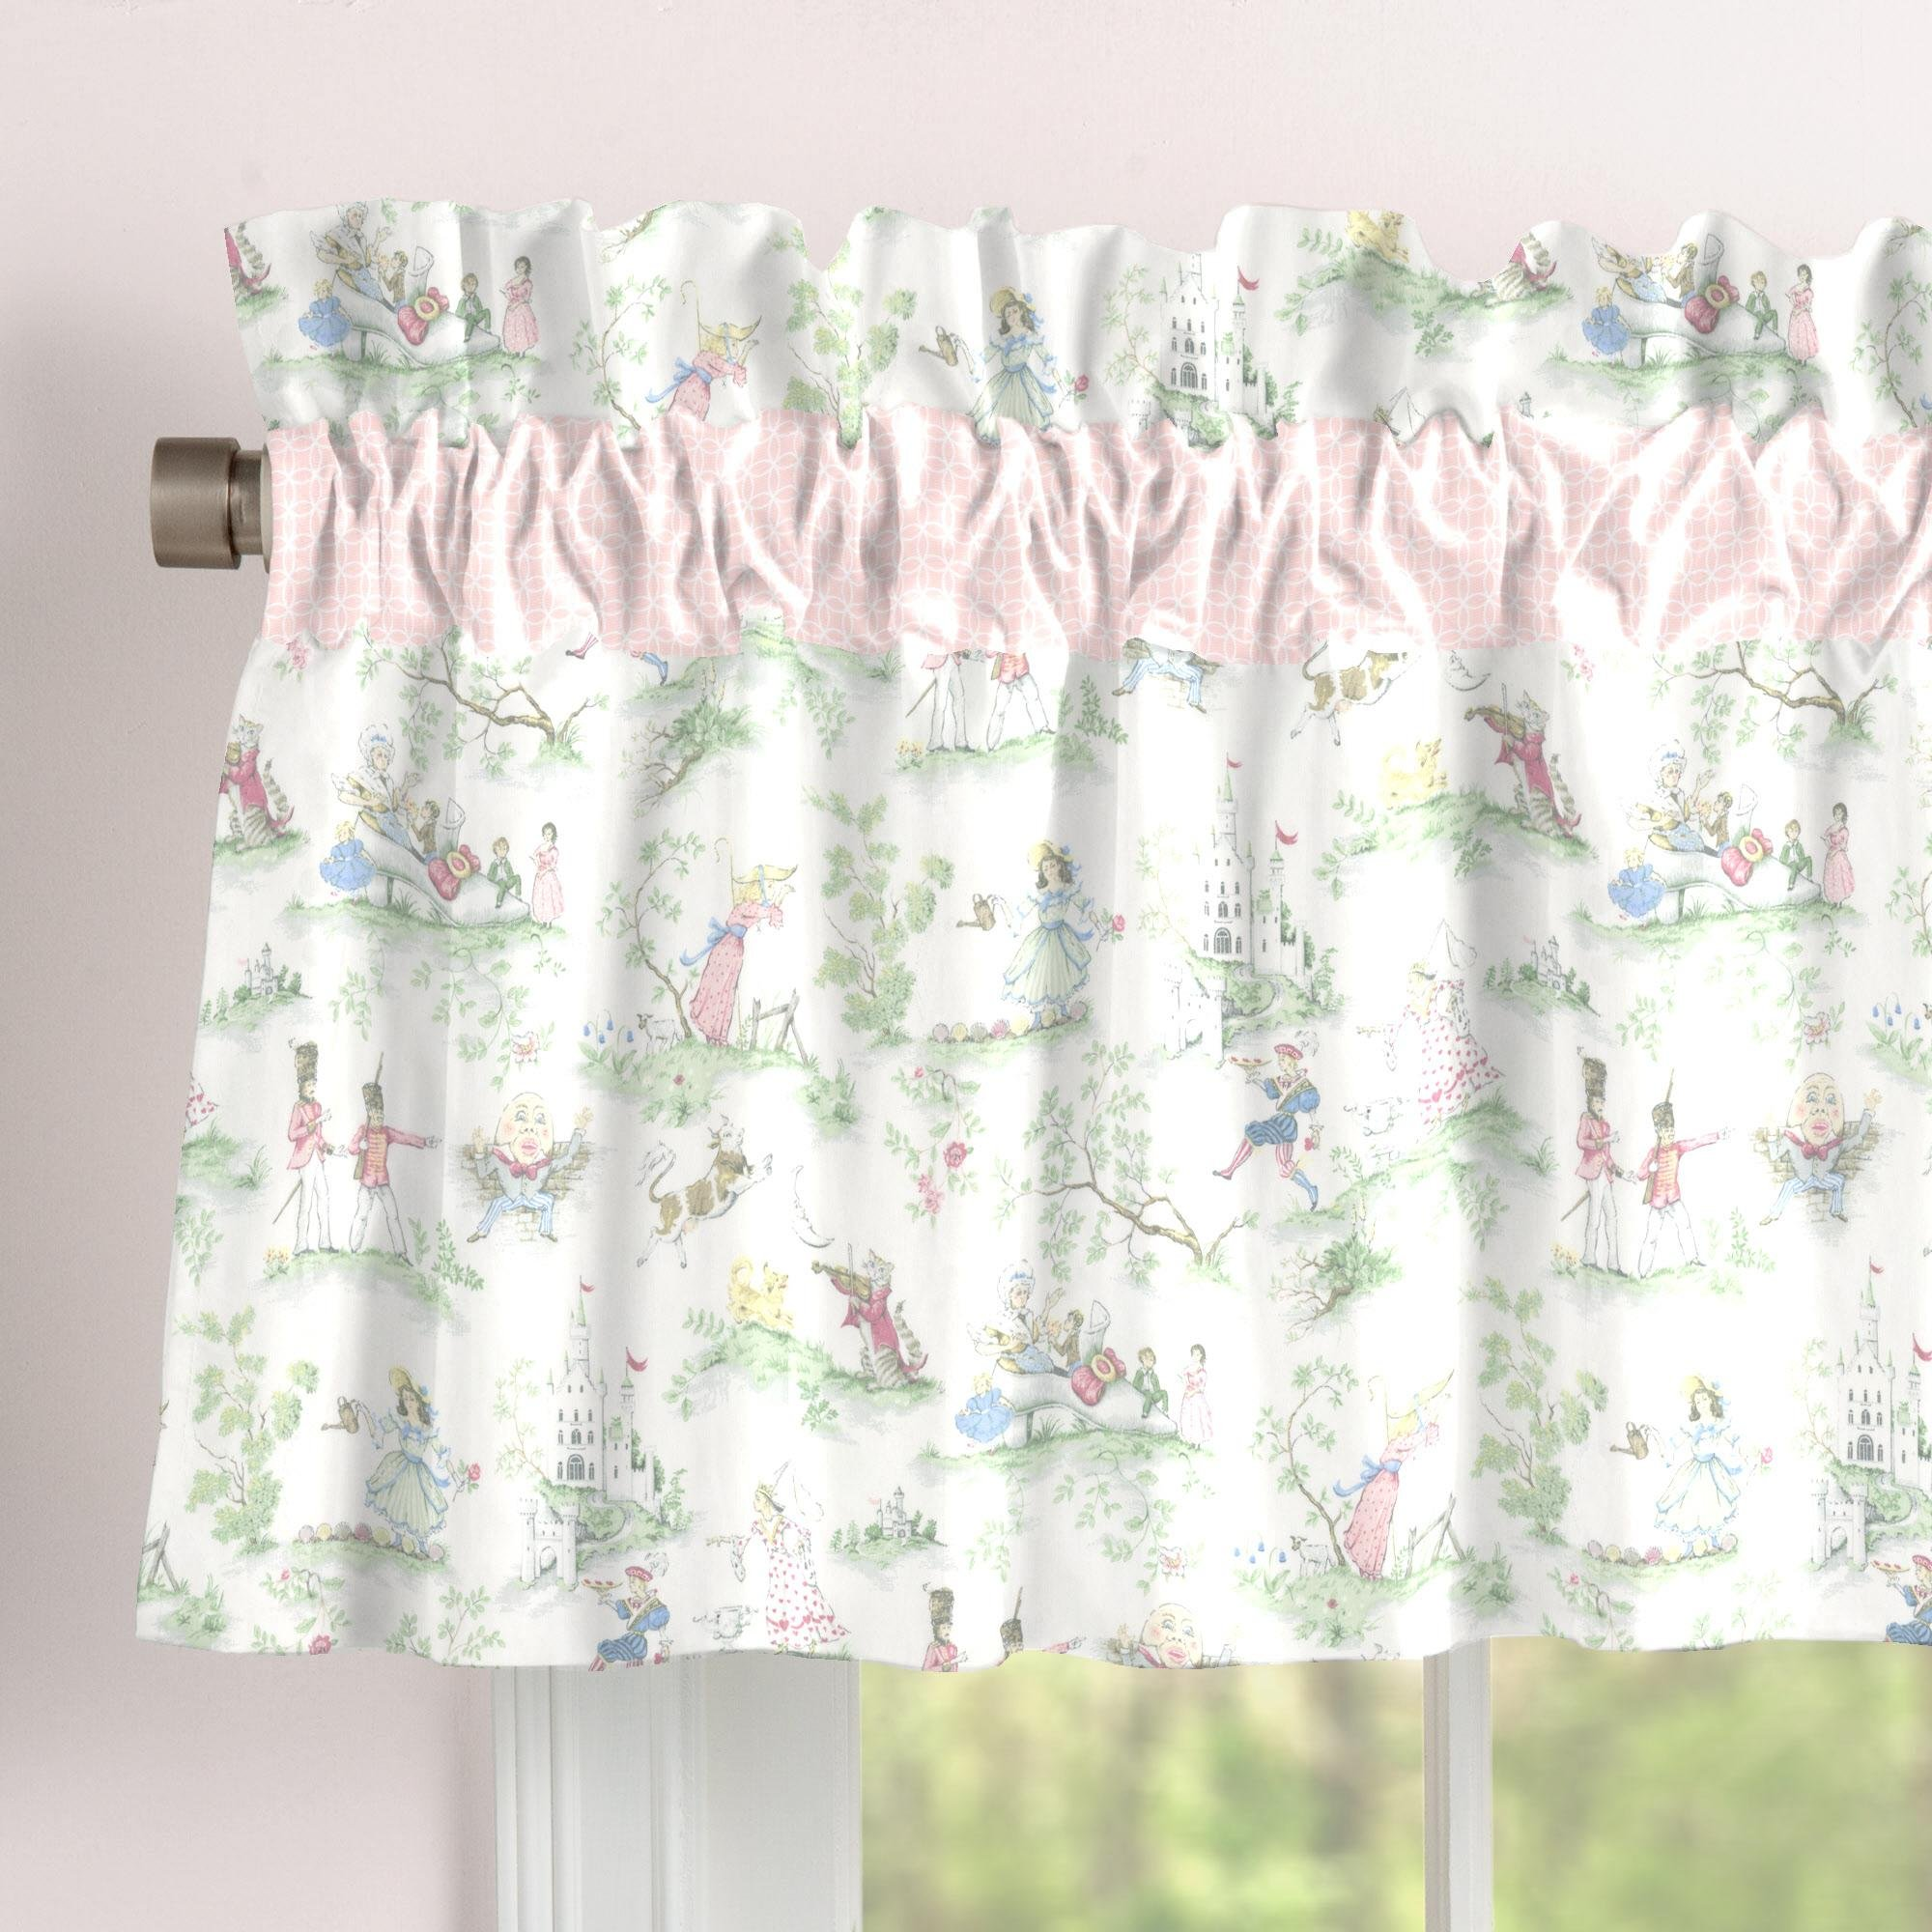 Carousel Designs Pink Over The Moon Toile Window Valance Rod Pocket by Carousel Designs